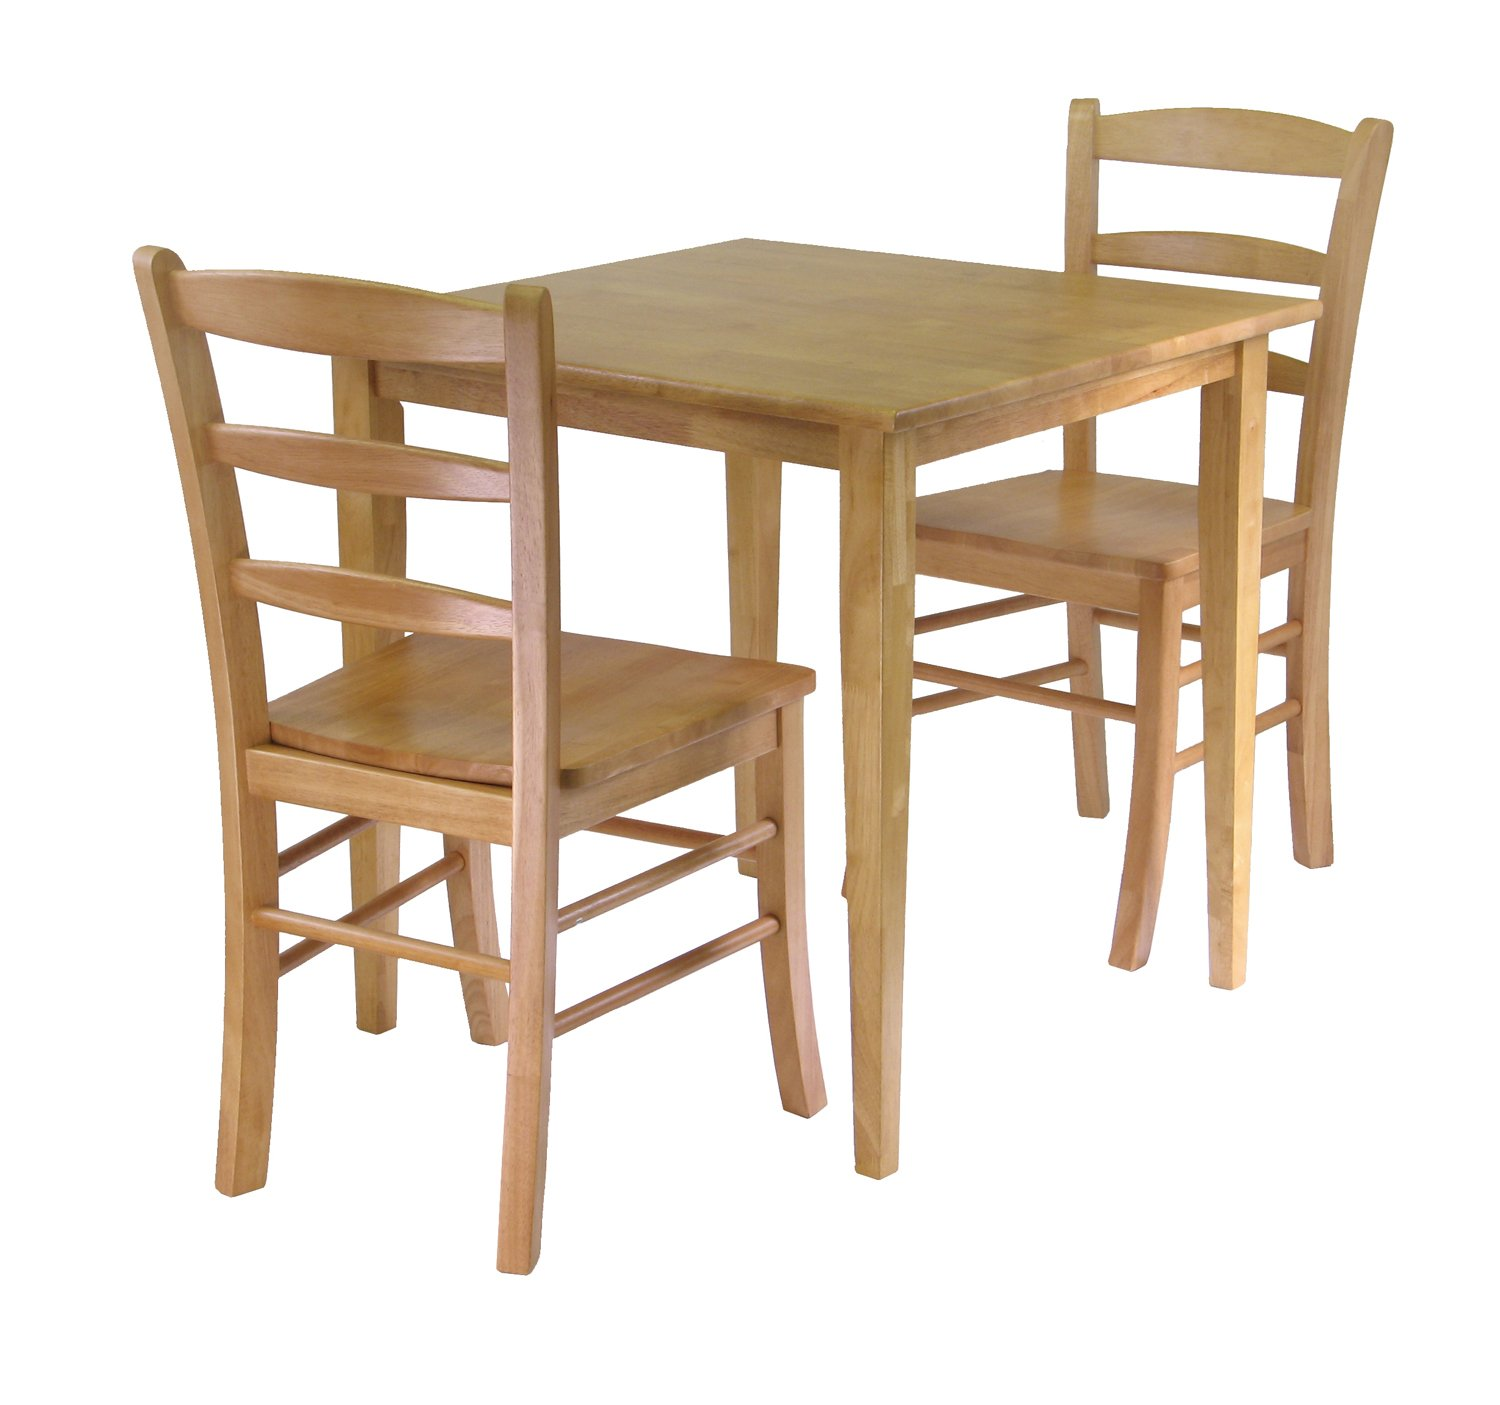 Small kitchen table sets - Ikea wooden dining table chairs ...